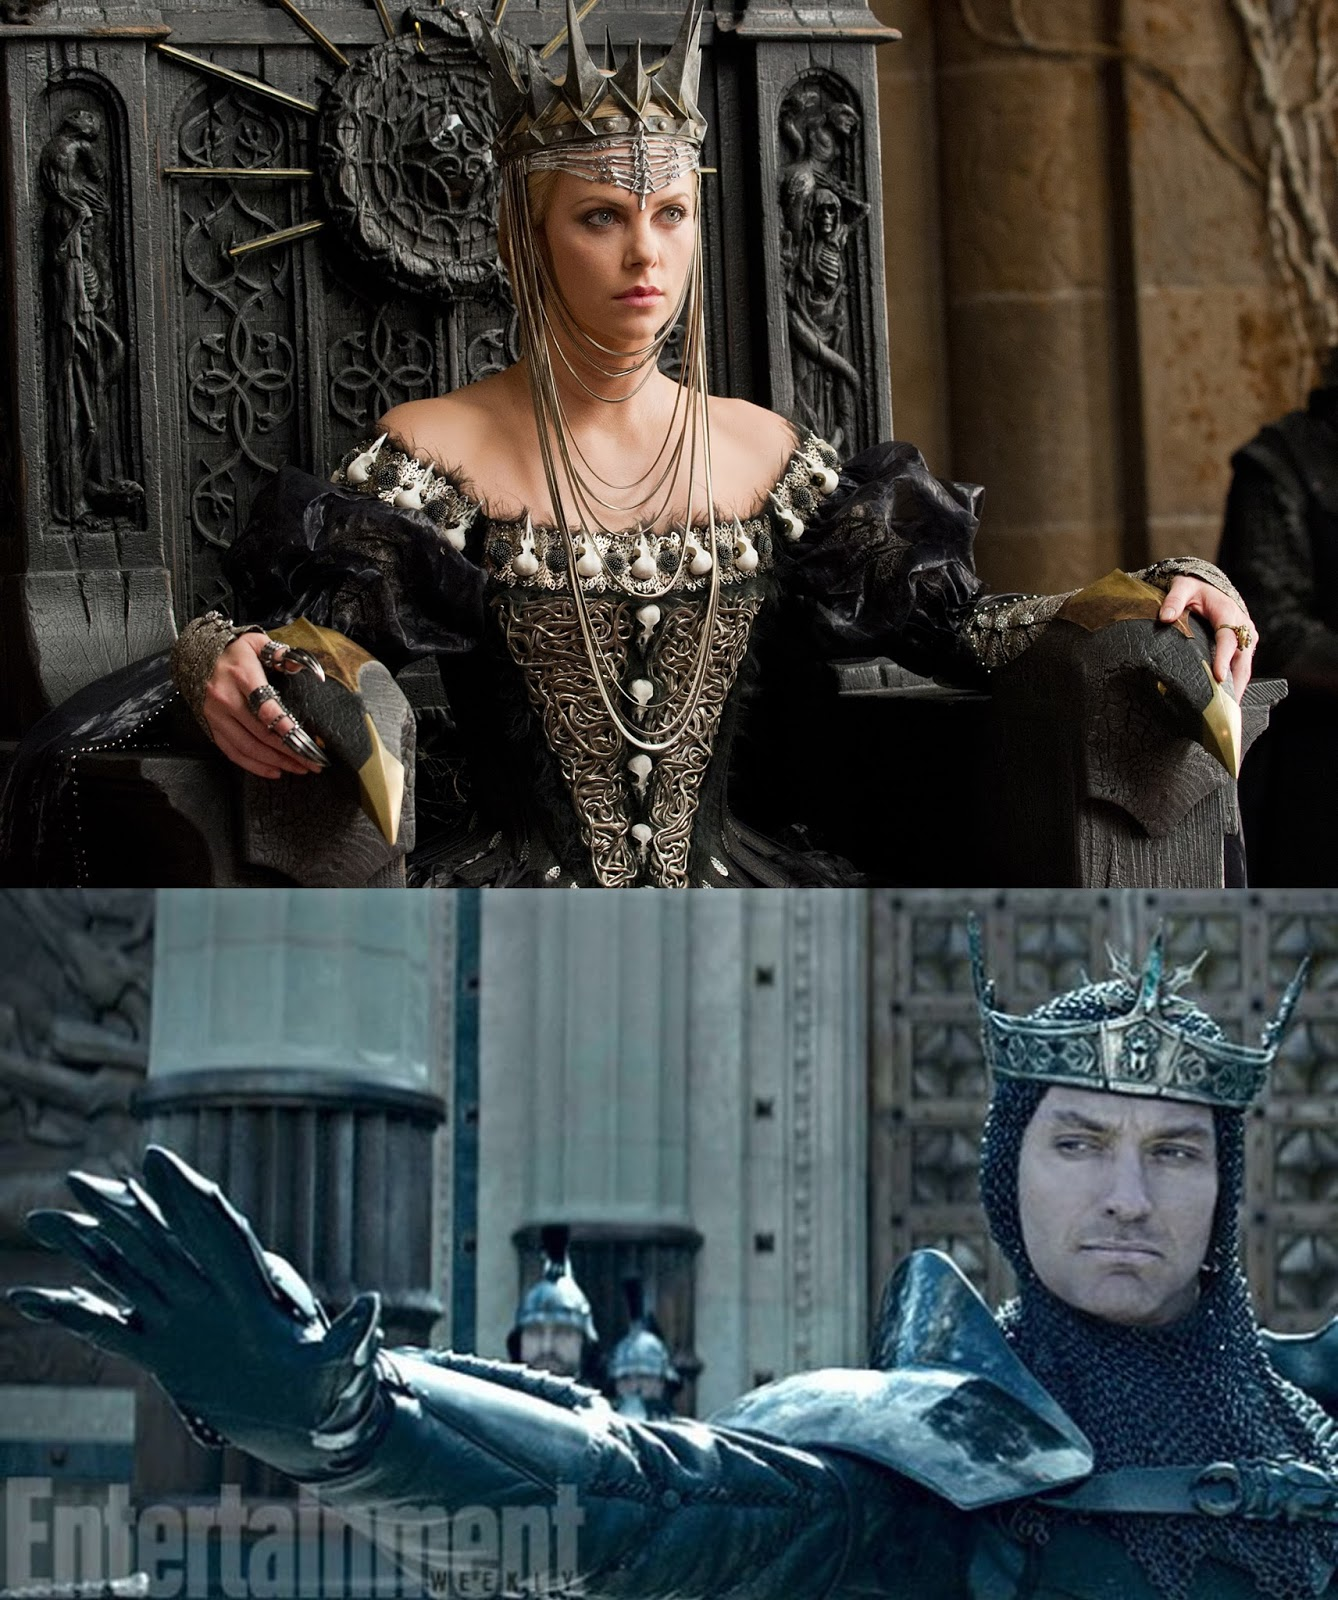 The Fine Art Diner July 2016 Free Shipping Ampamp Strap Lanccelot Watch Aegis Of Bedivere Its Inevitable To Compare Jude Laws King Vortigern Ravenna Charlize Theron In Snow White And Huntsman Both Monarchs Usurped Throne Their